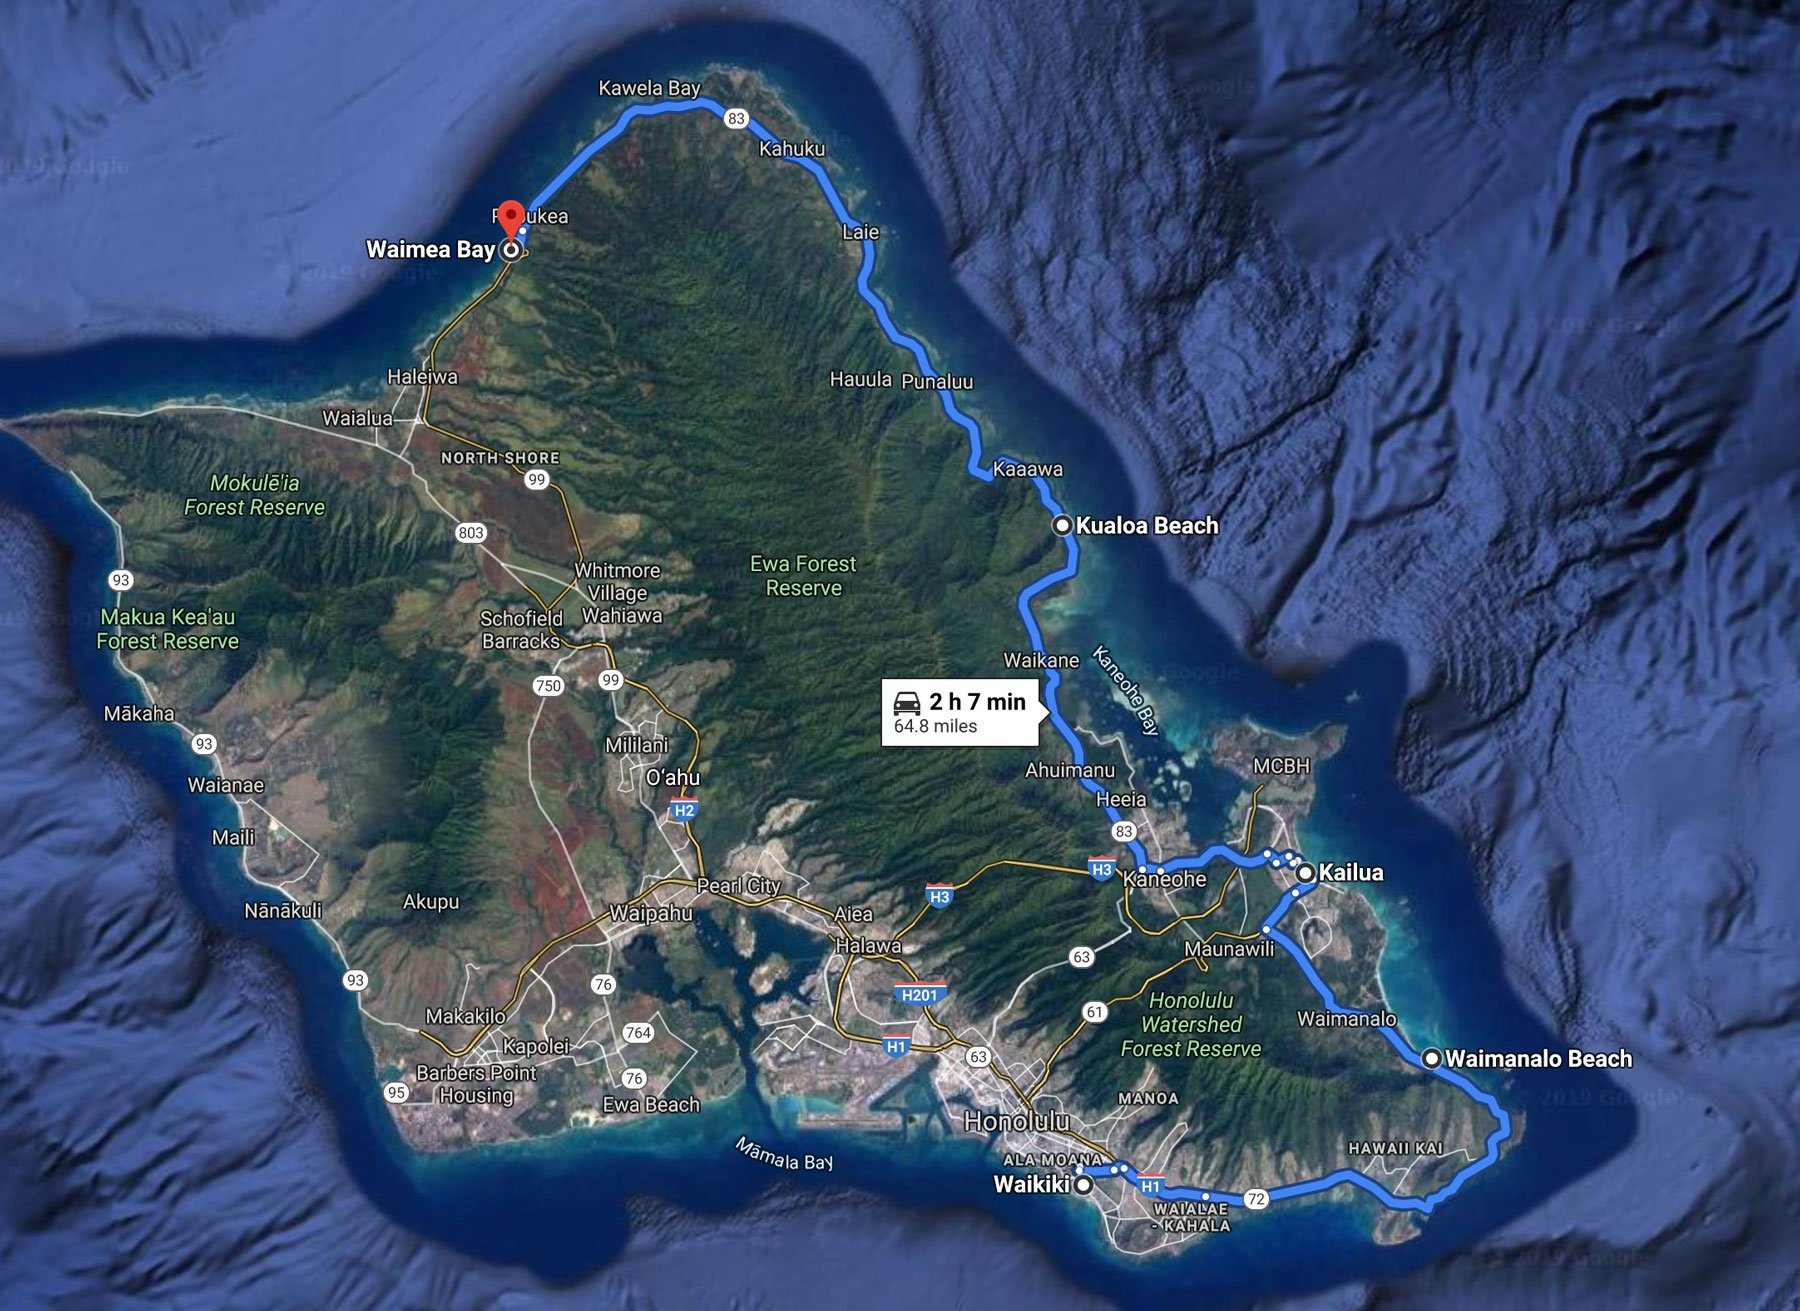 Oahu driving map from Waikiki to North Shore